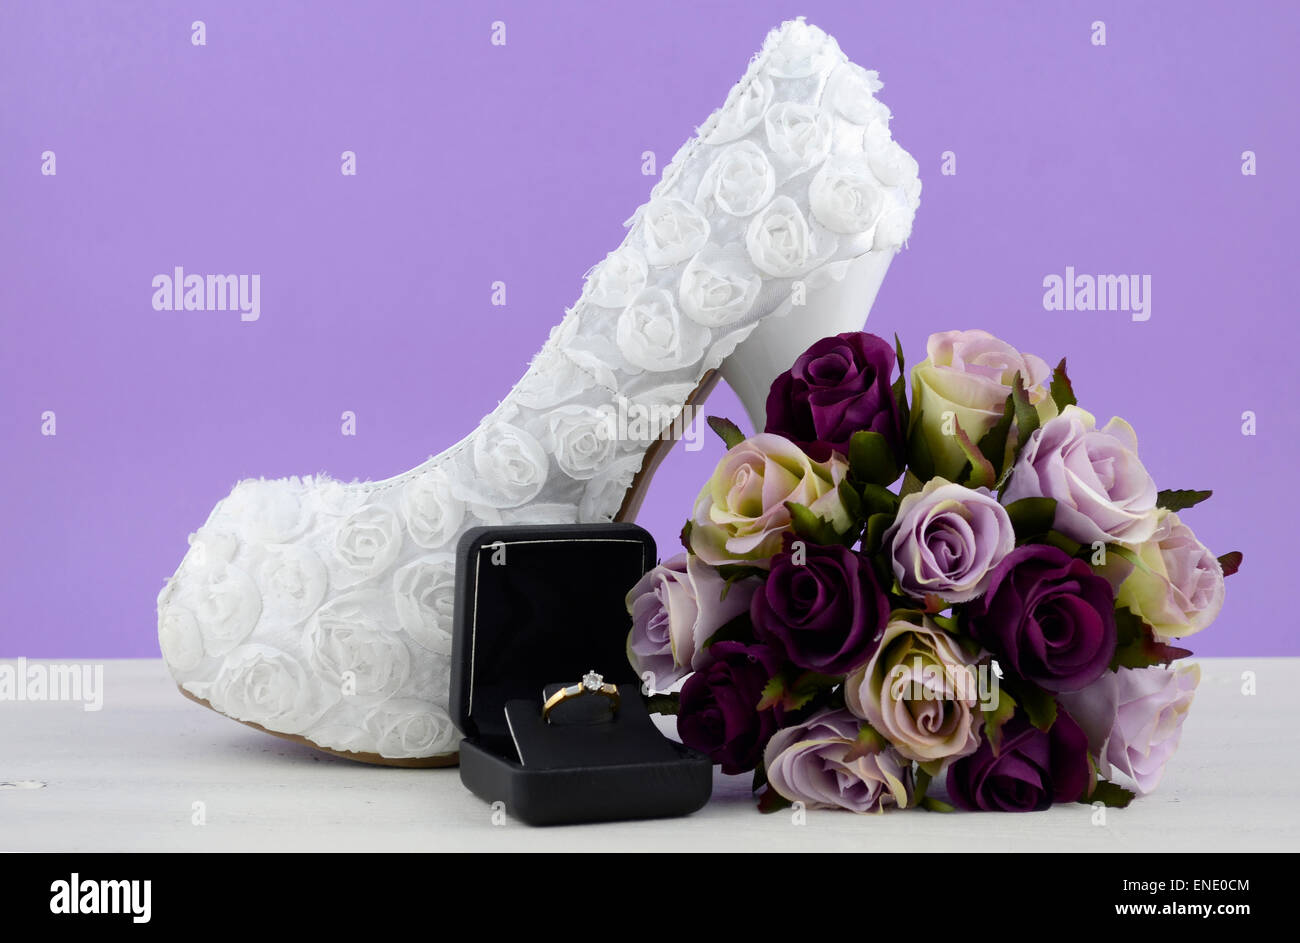 Wedding Theme White Floral Bridal Shoes With Flowers On Shabby Chic